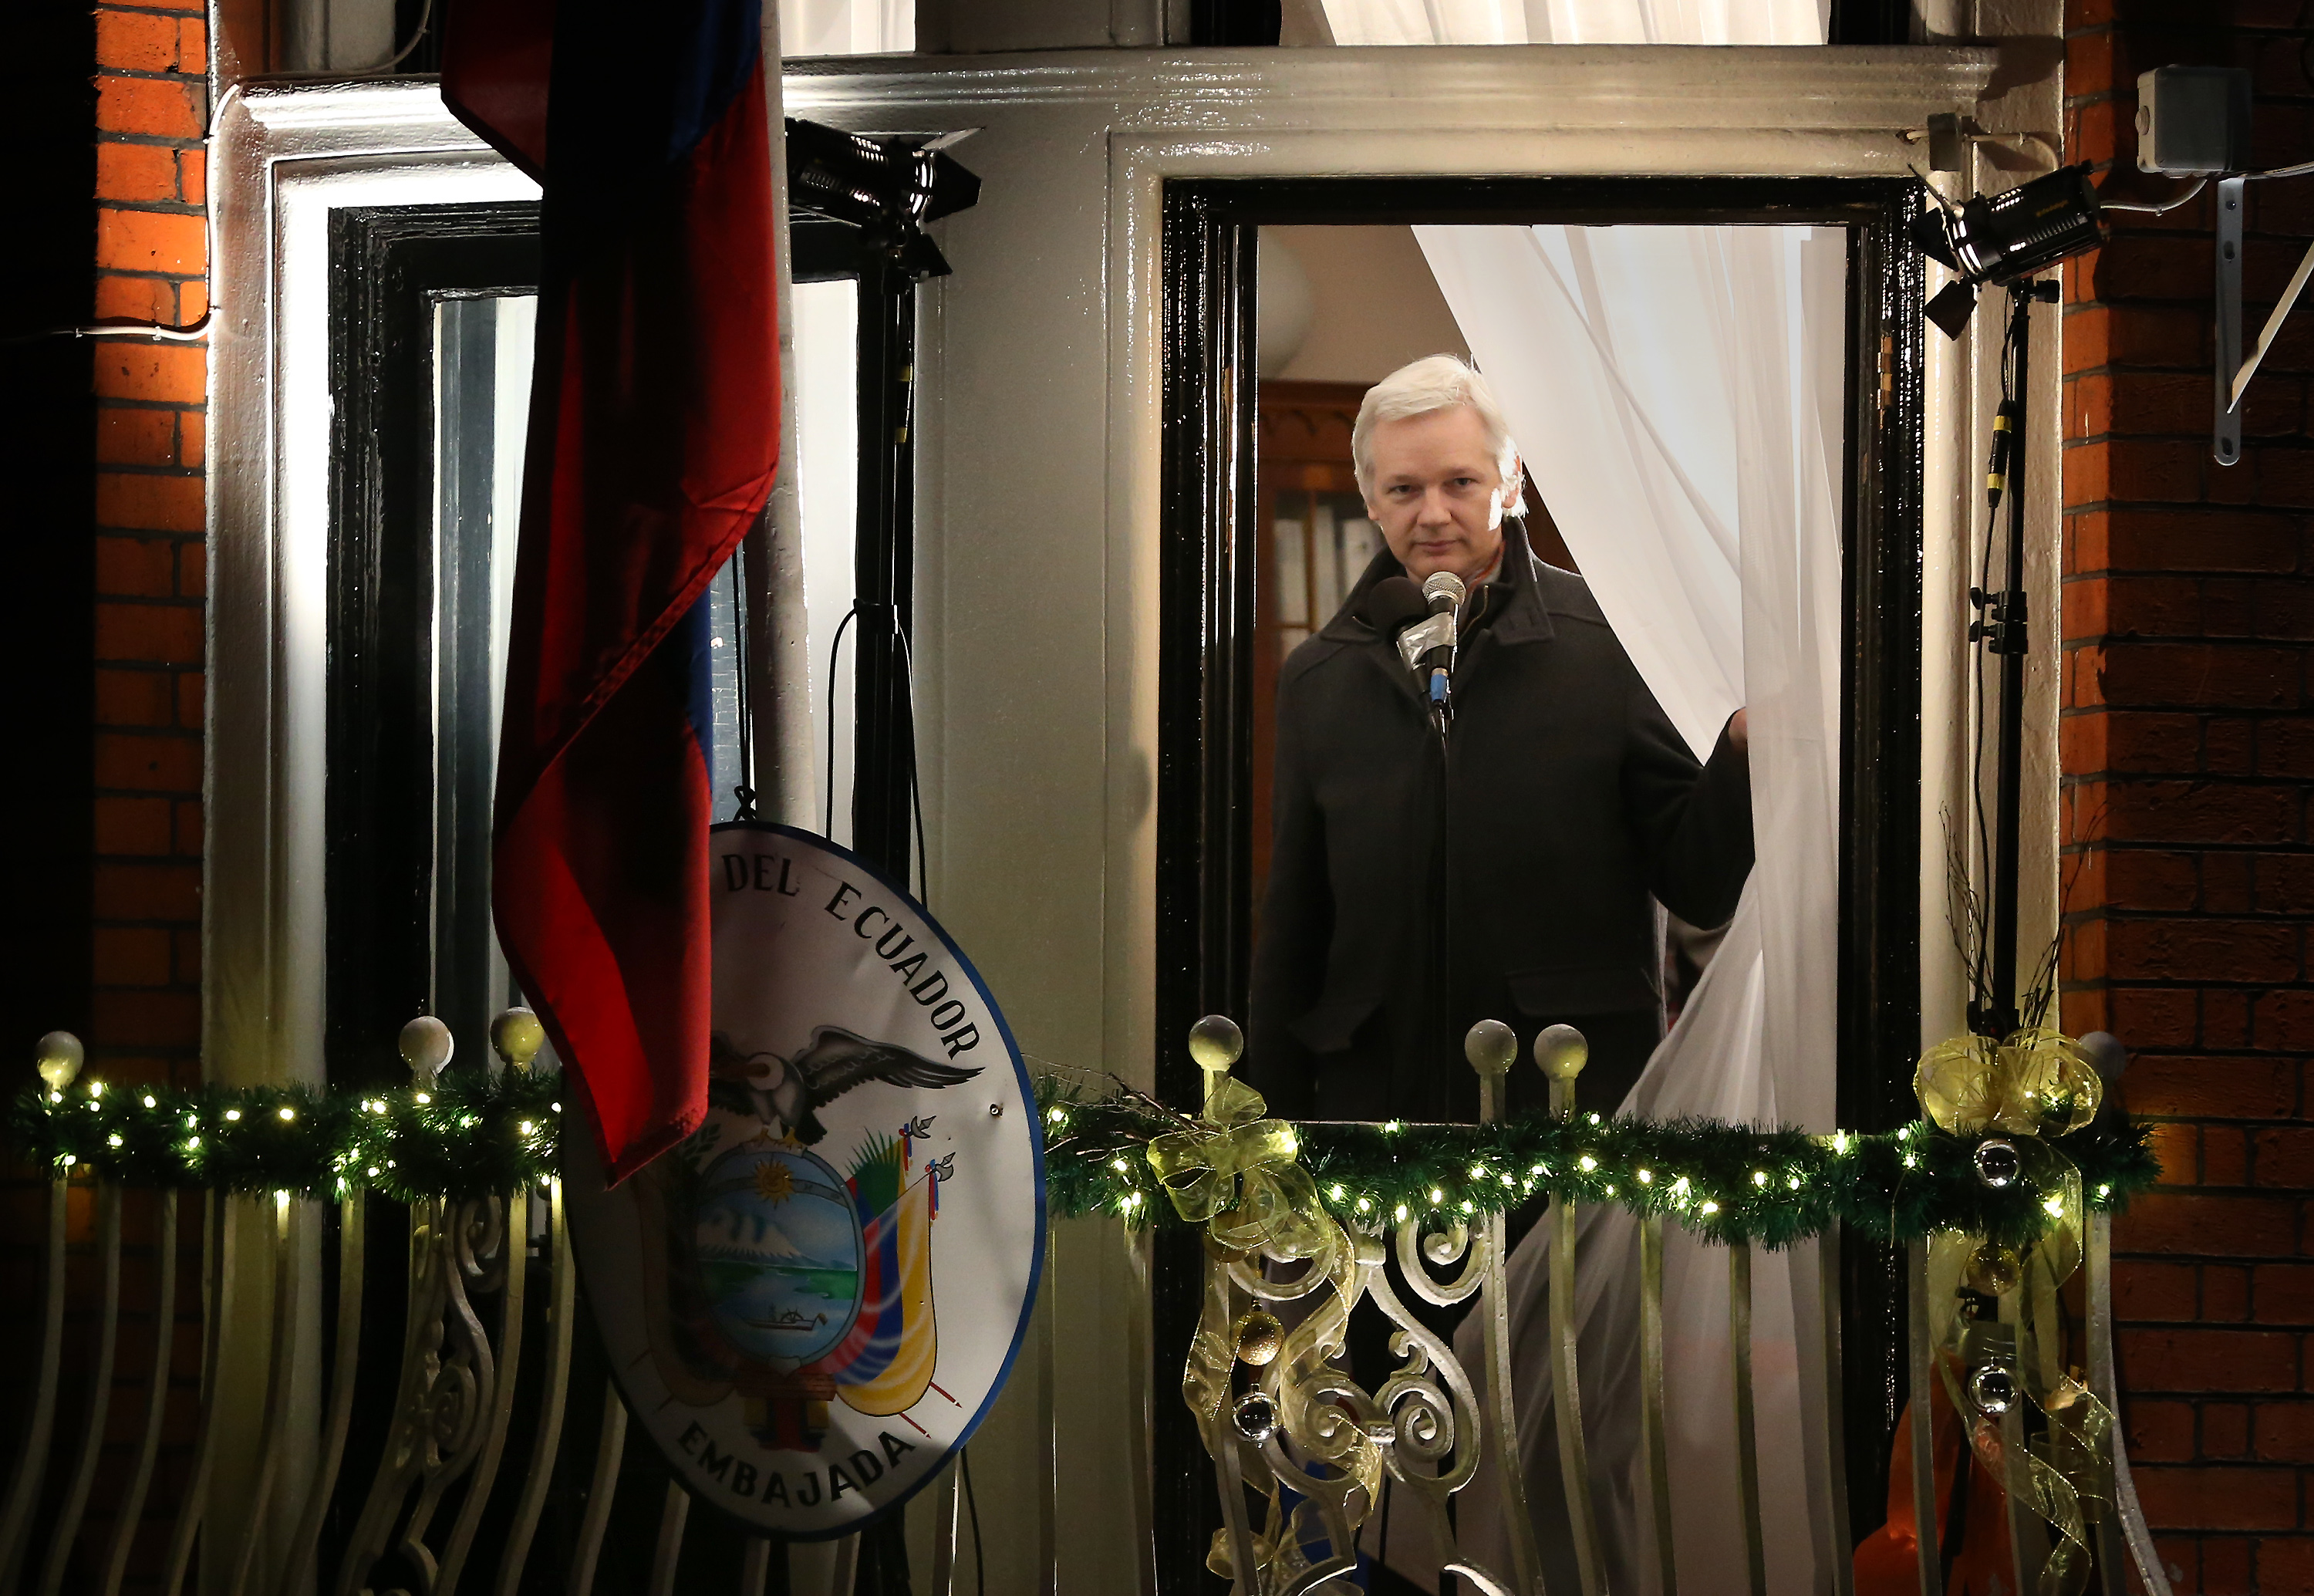 Wikileaks Founder Julian Assange Makes A Statement After Six Months Residing At The Ecuadorian Embassy